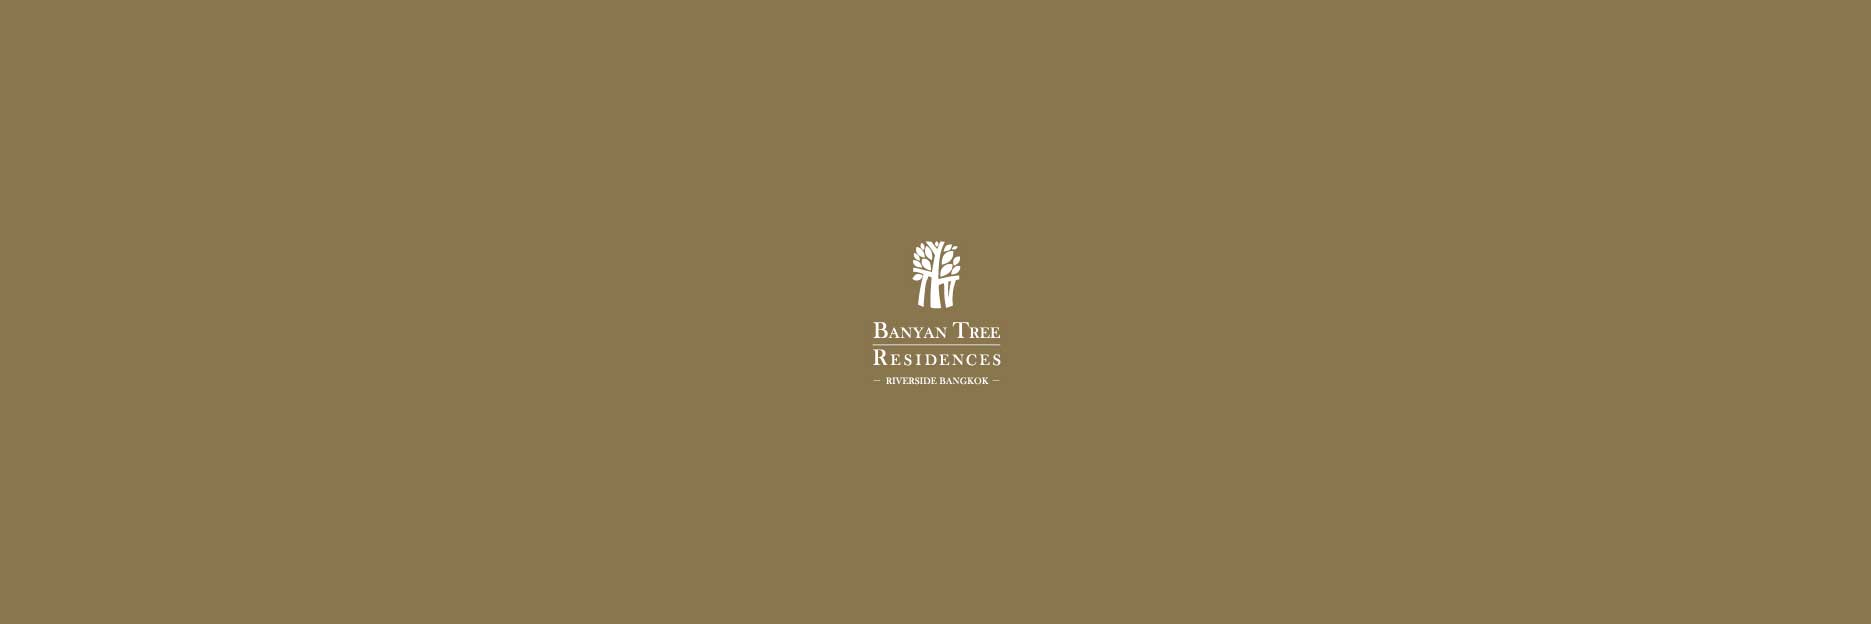 Banyan Tree Residences Riverside Bangkok Brochure 1